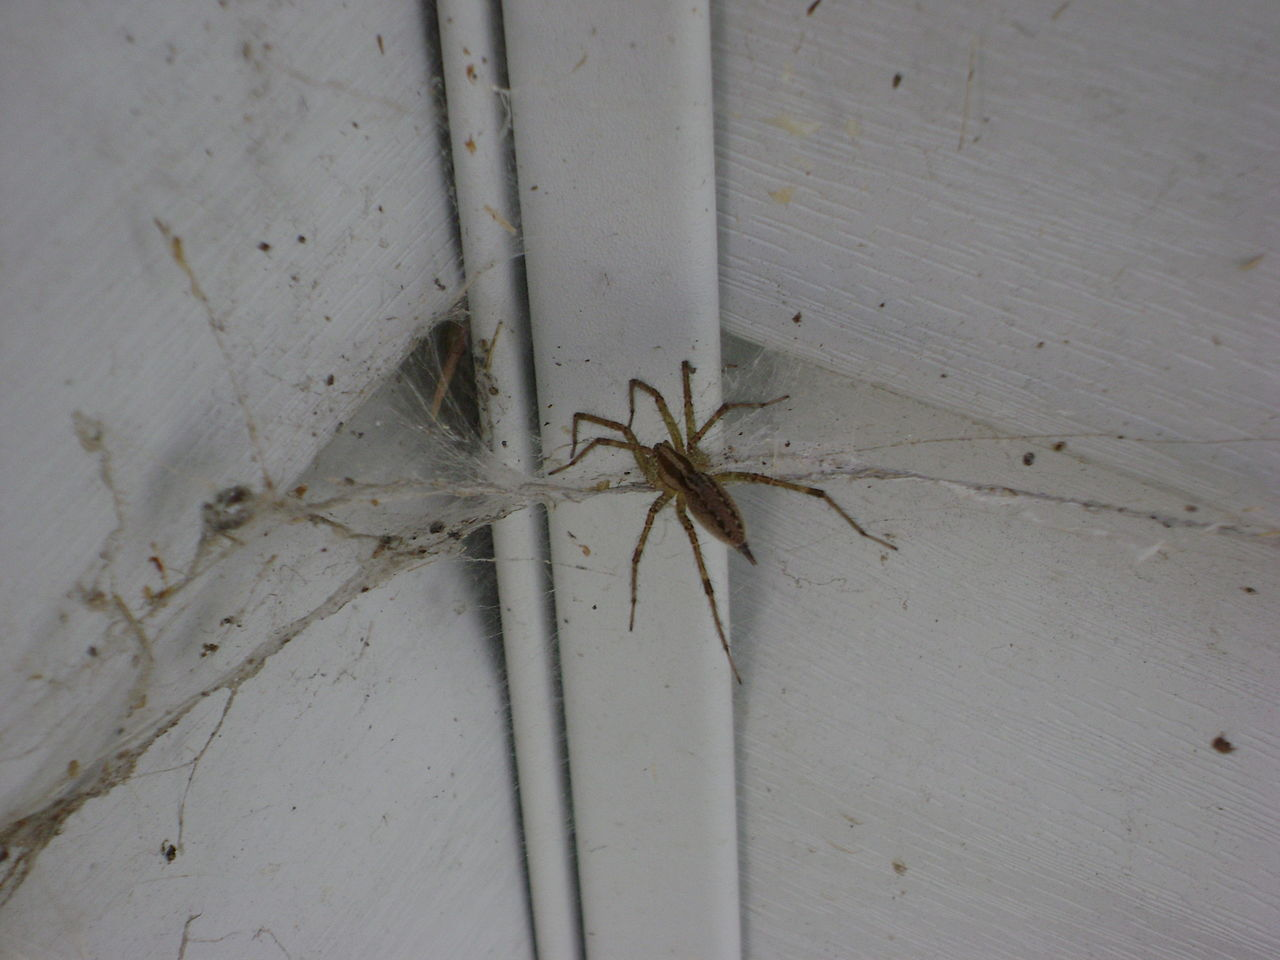 https://commons.wikimedia.org/wiki/File:Spider_in_corner.jpg